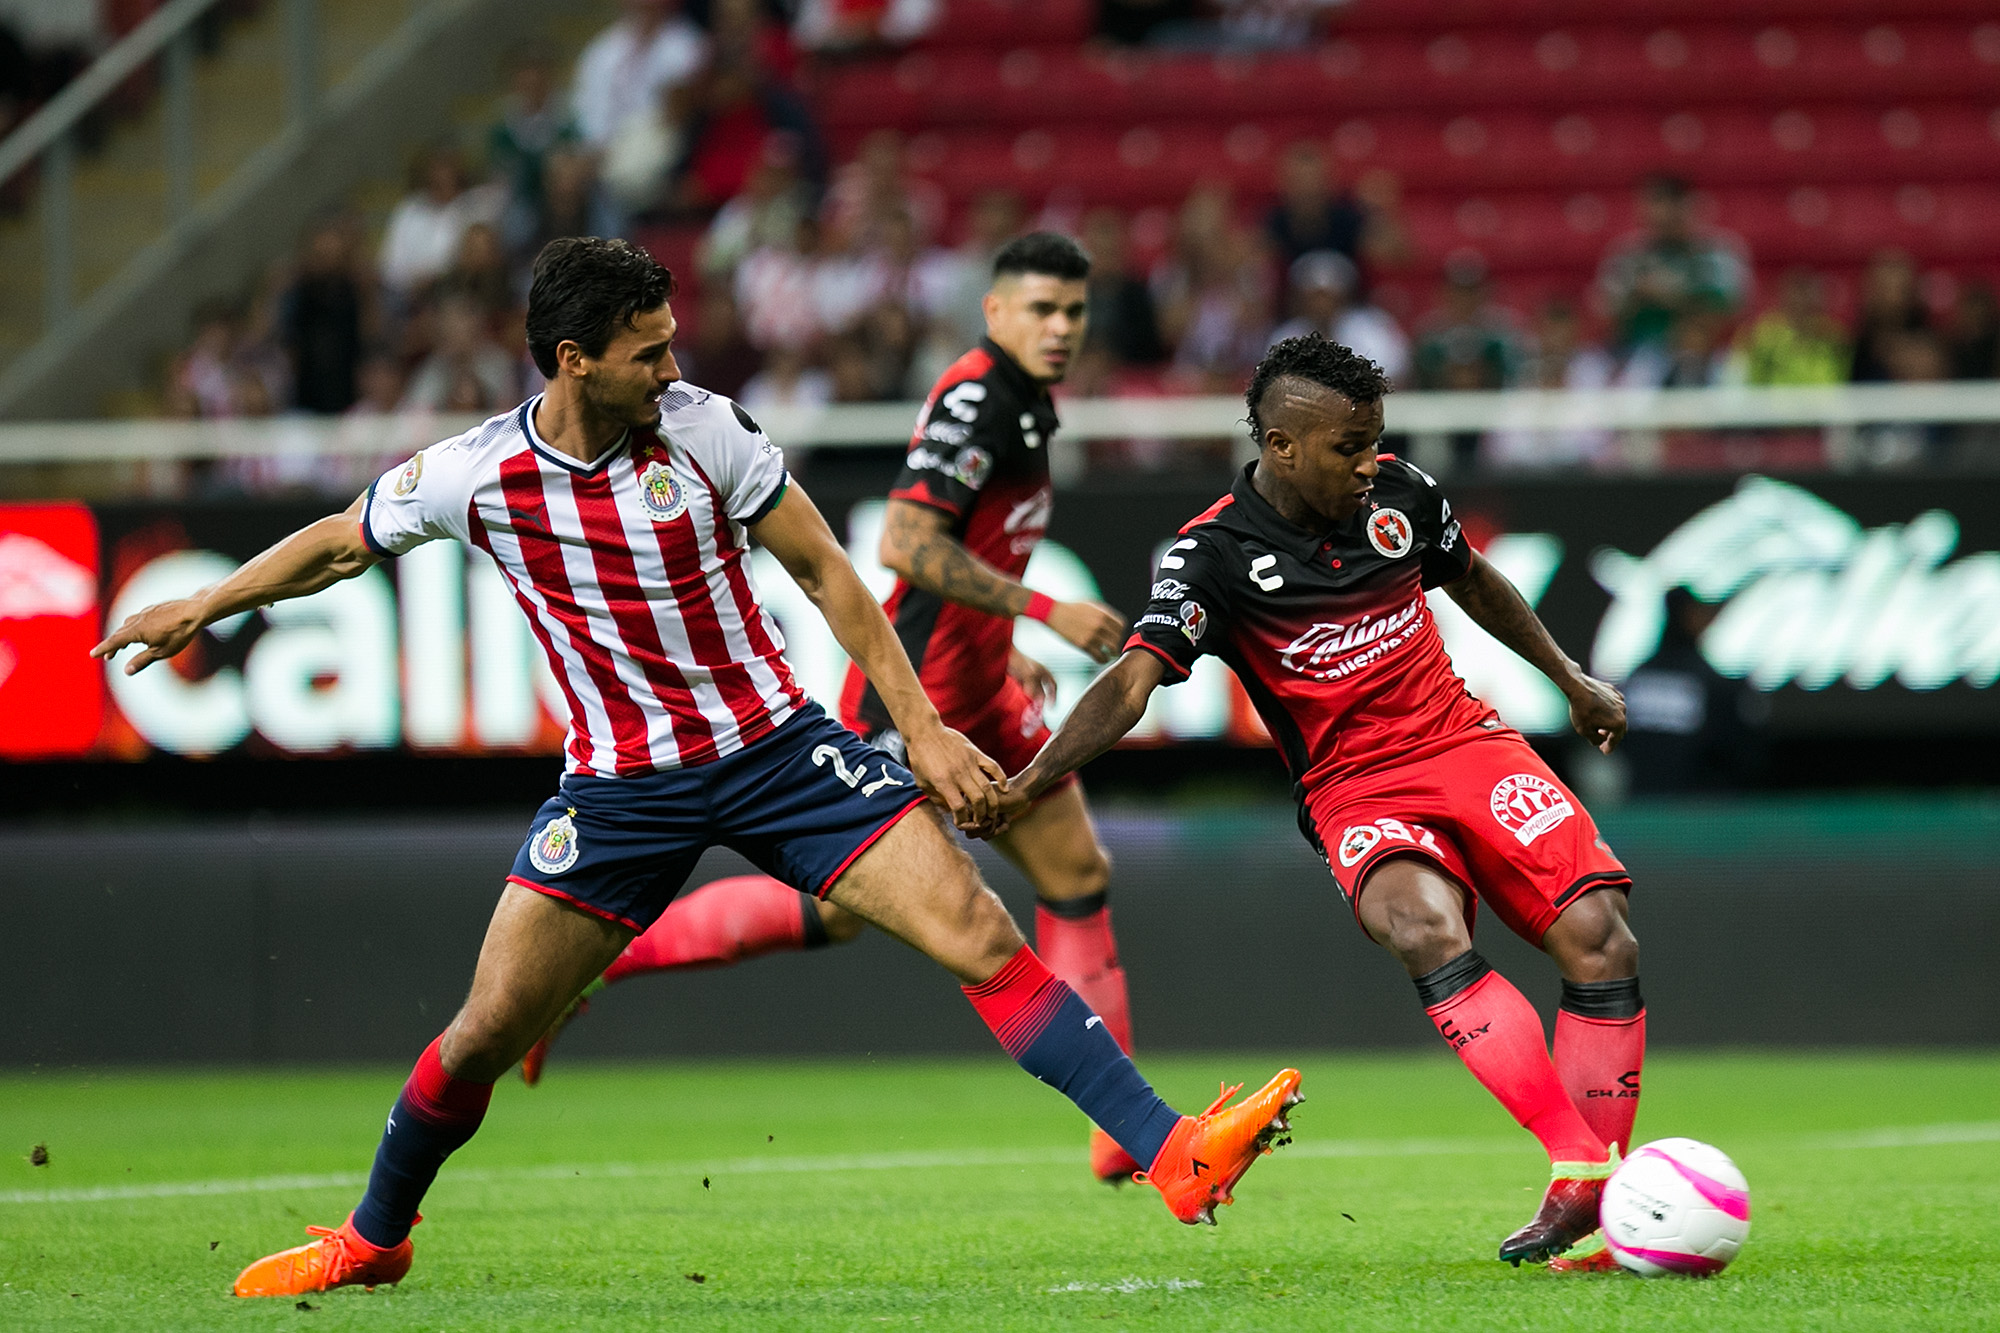 Chivas 3-1 Club Tijuana: A spot in the playoffs is quickly slipping away from Xolos